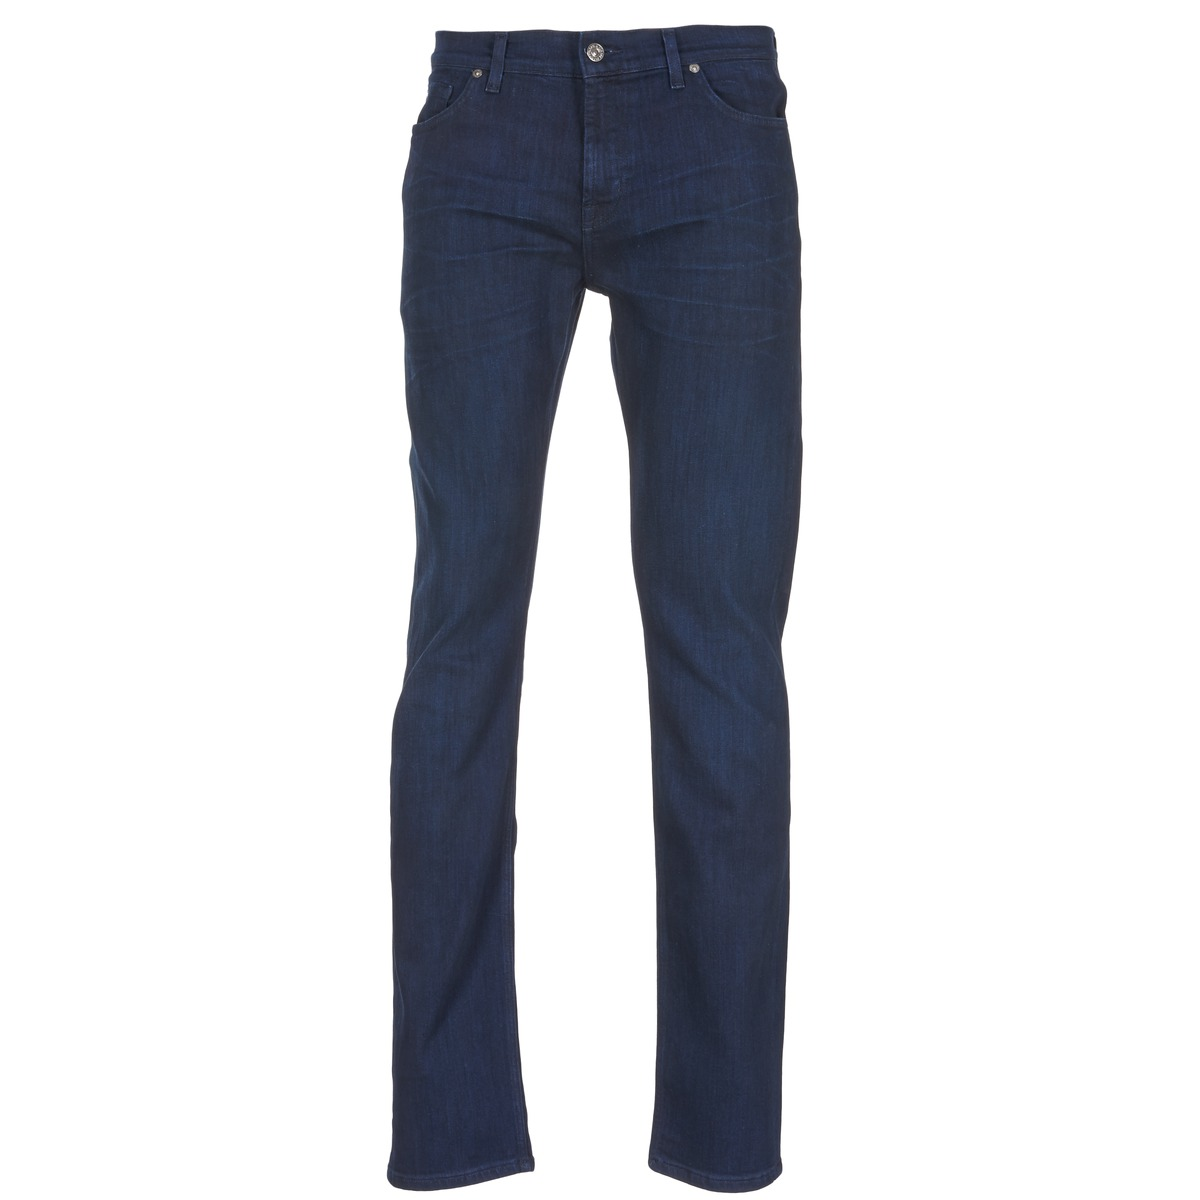 7 for all mankind  ronnie winter intense  men's skinny jeans in blue